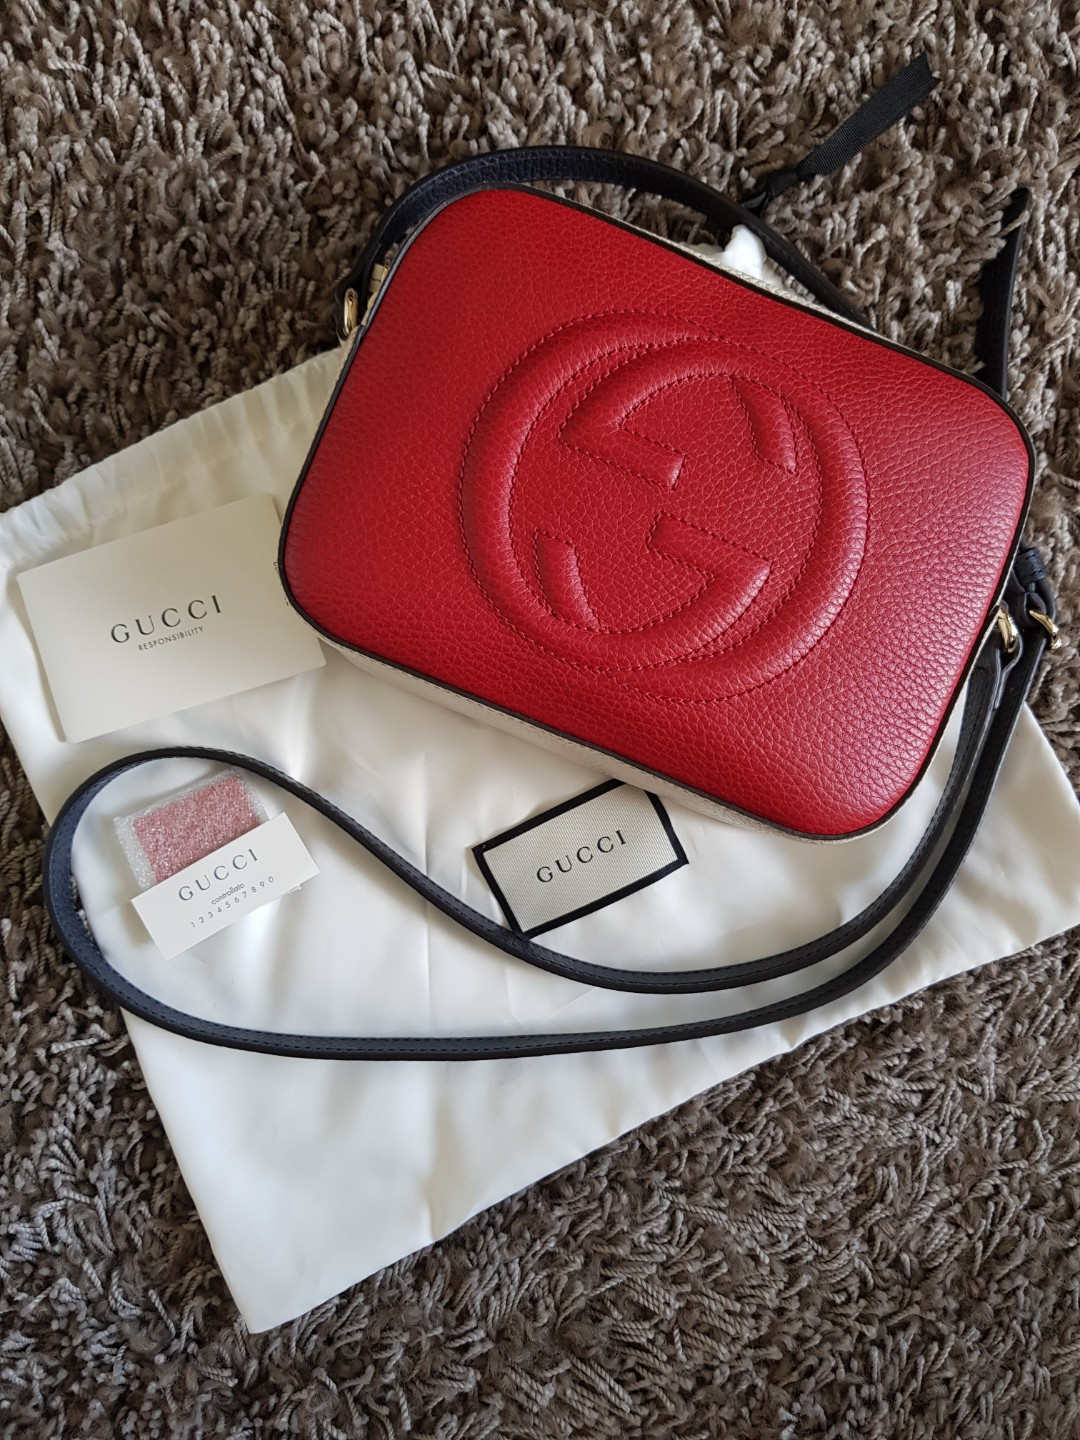 1a9f0f5f1a4 Gucci Soho Tricolour Sellier Limited Edition Crossbody Bag